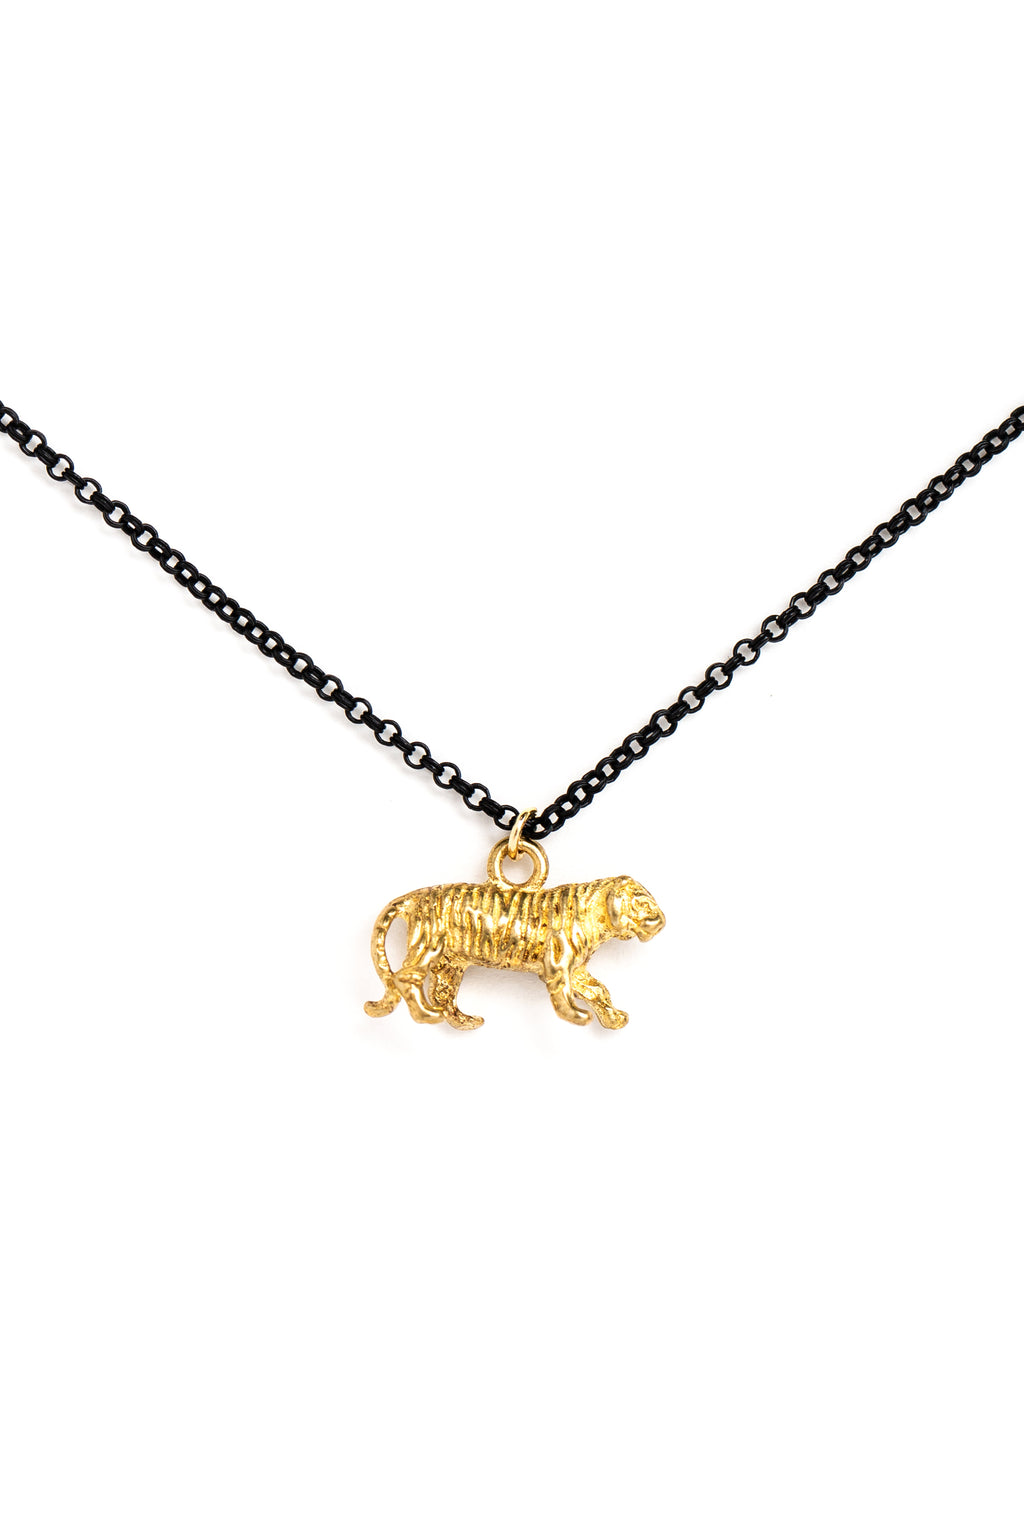 Brass Tiger Charm Necklace on Black Chain